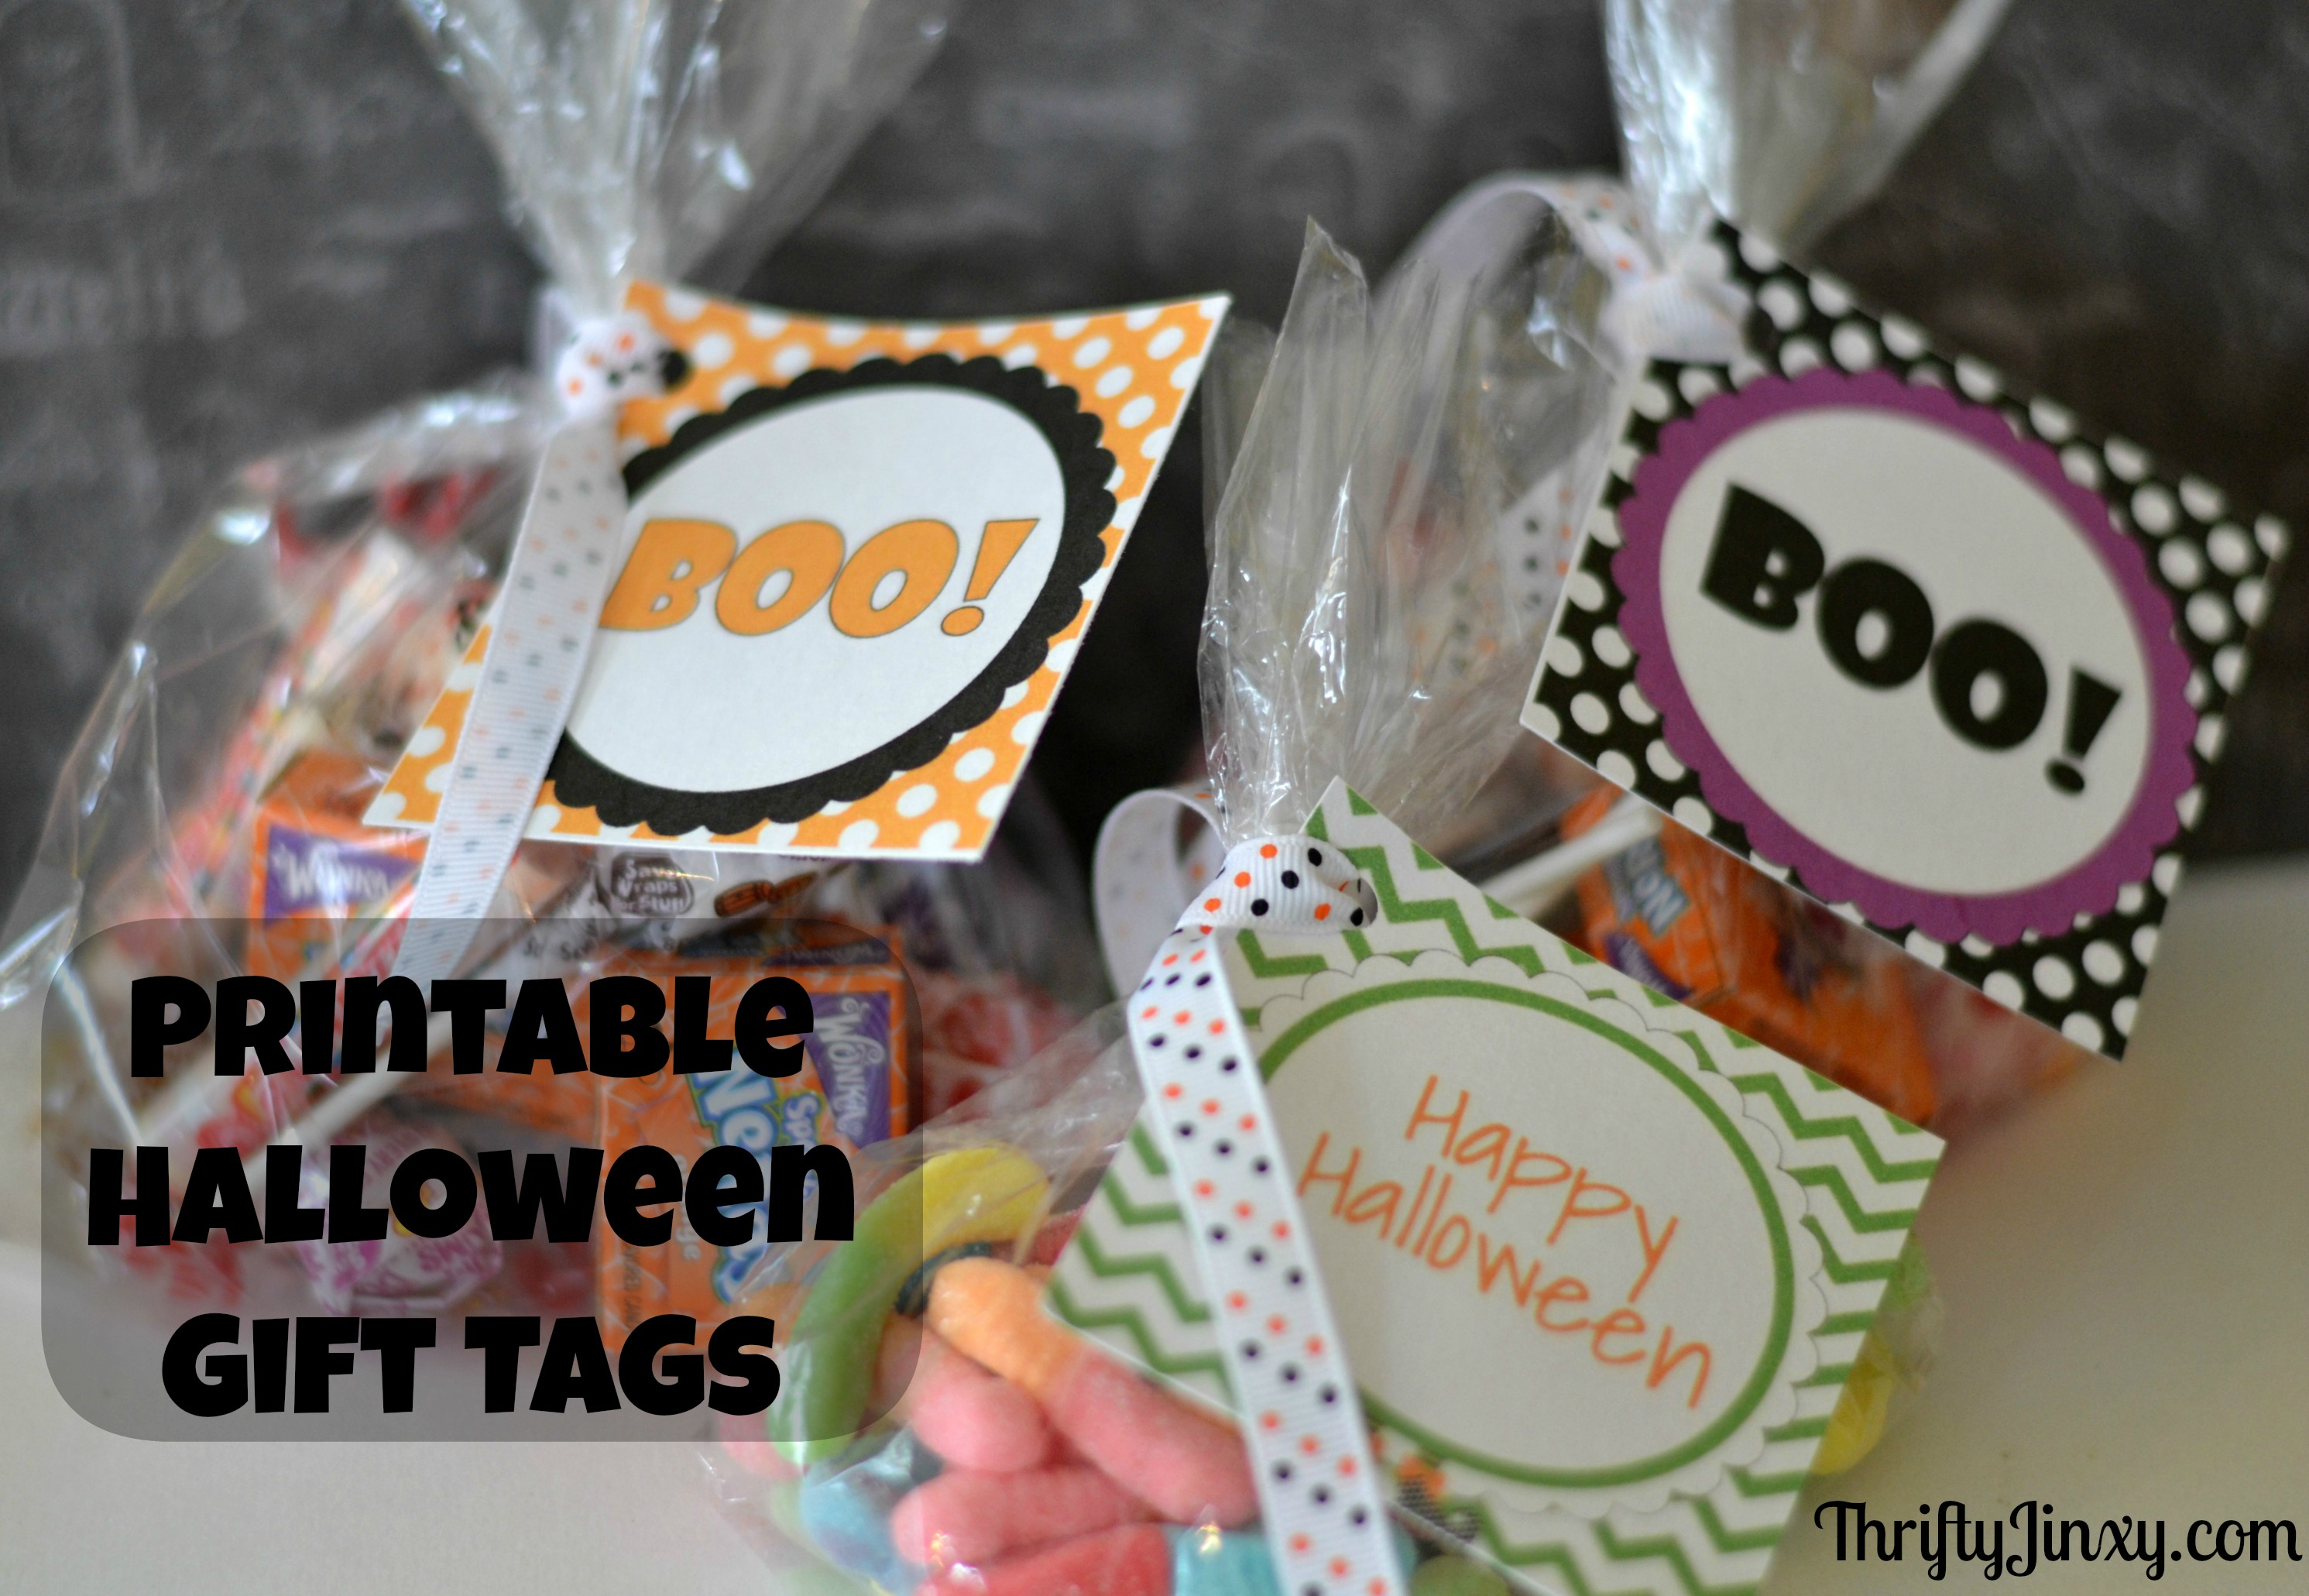 Free Printable Halloween Gift Tags And Treat Bag Tags - Thrifty Jinxy - Free Printable Gift Bag Tags